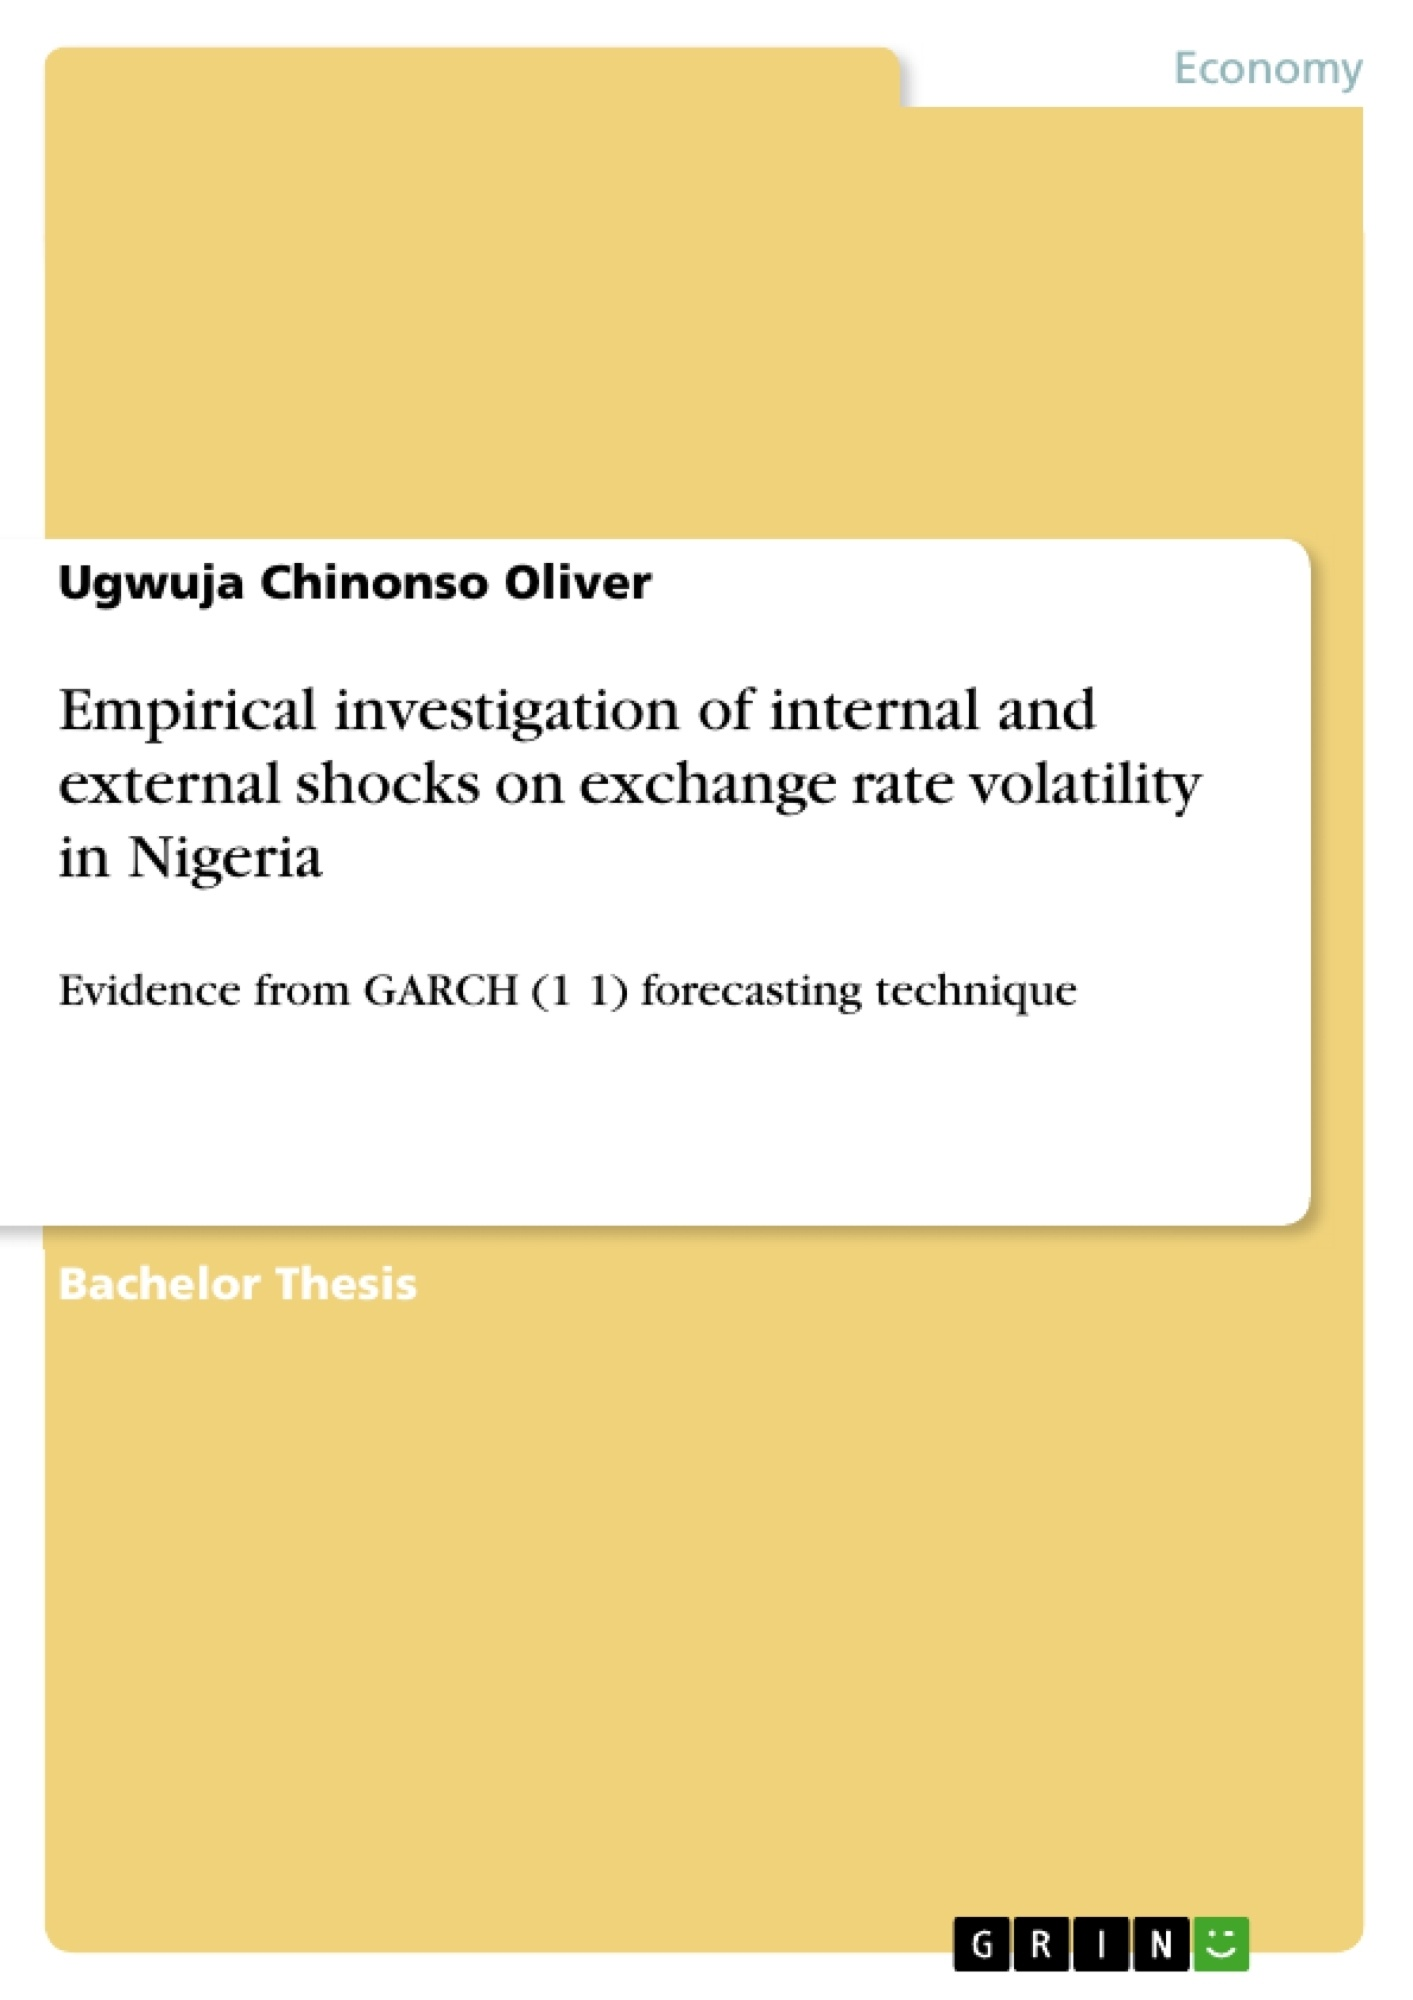 Title: Empirical investigation of internal and external shocks on exchange rate volatility in Nigeria